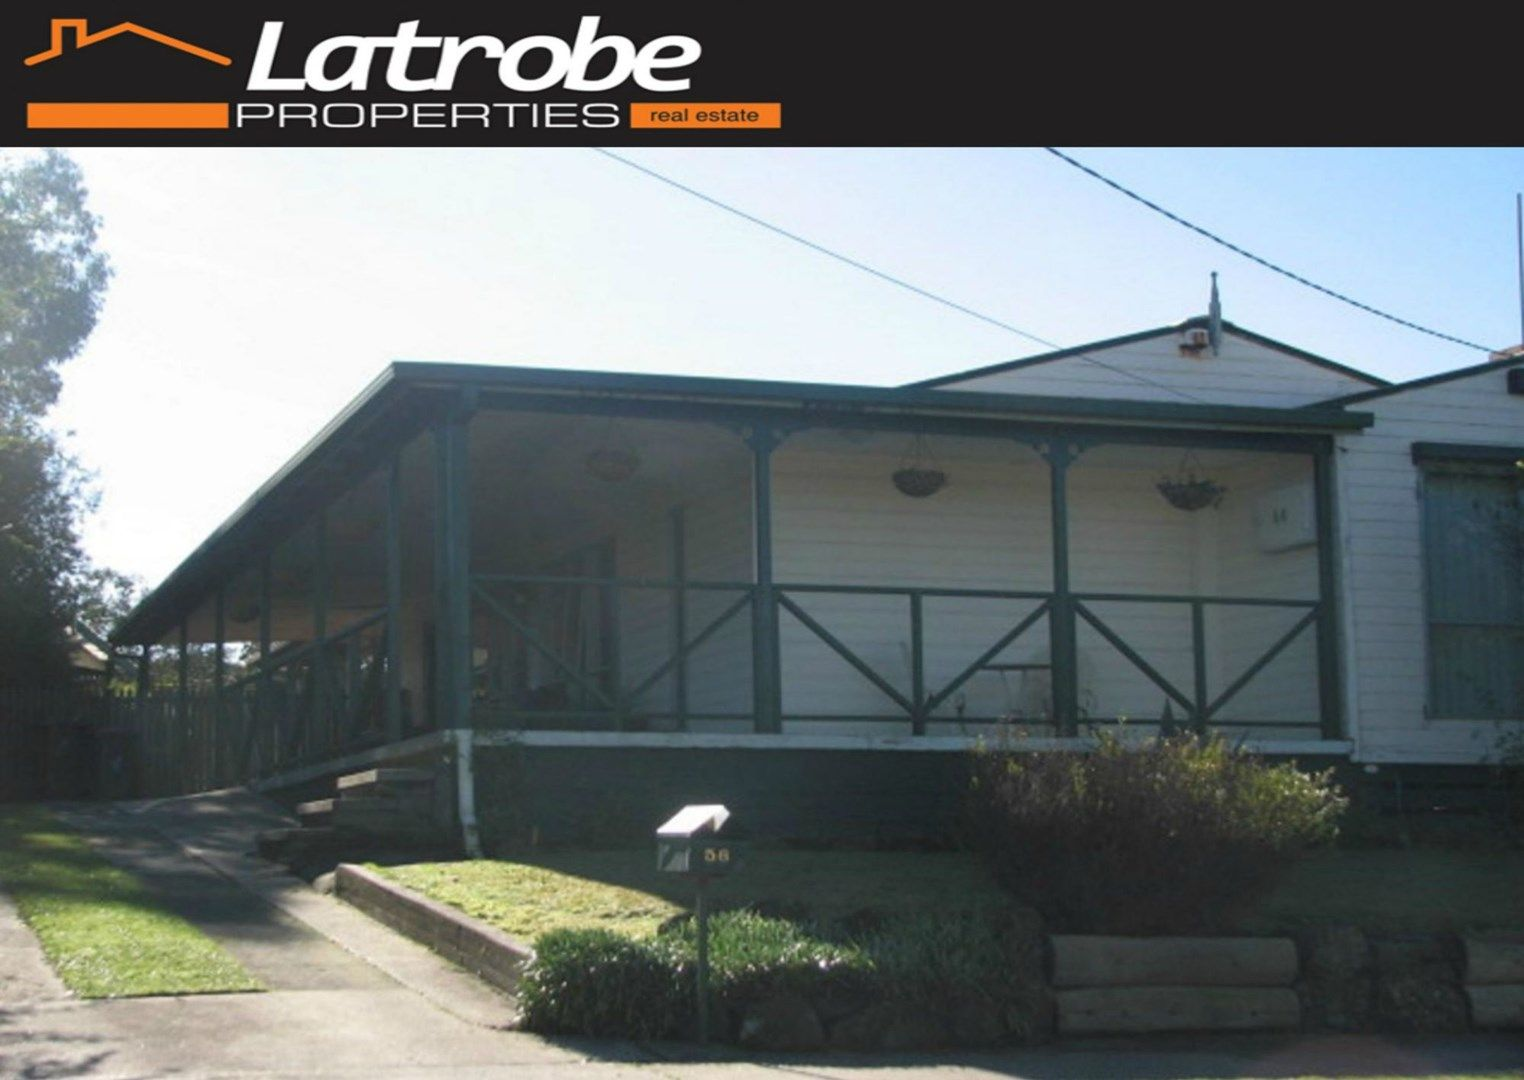 56 Anderson Avenue St, Yallourn North VIC 3825, Image 0